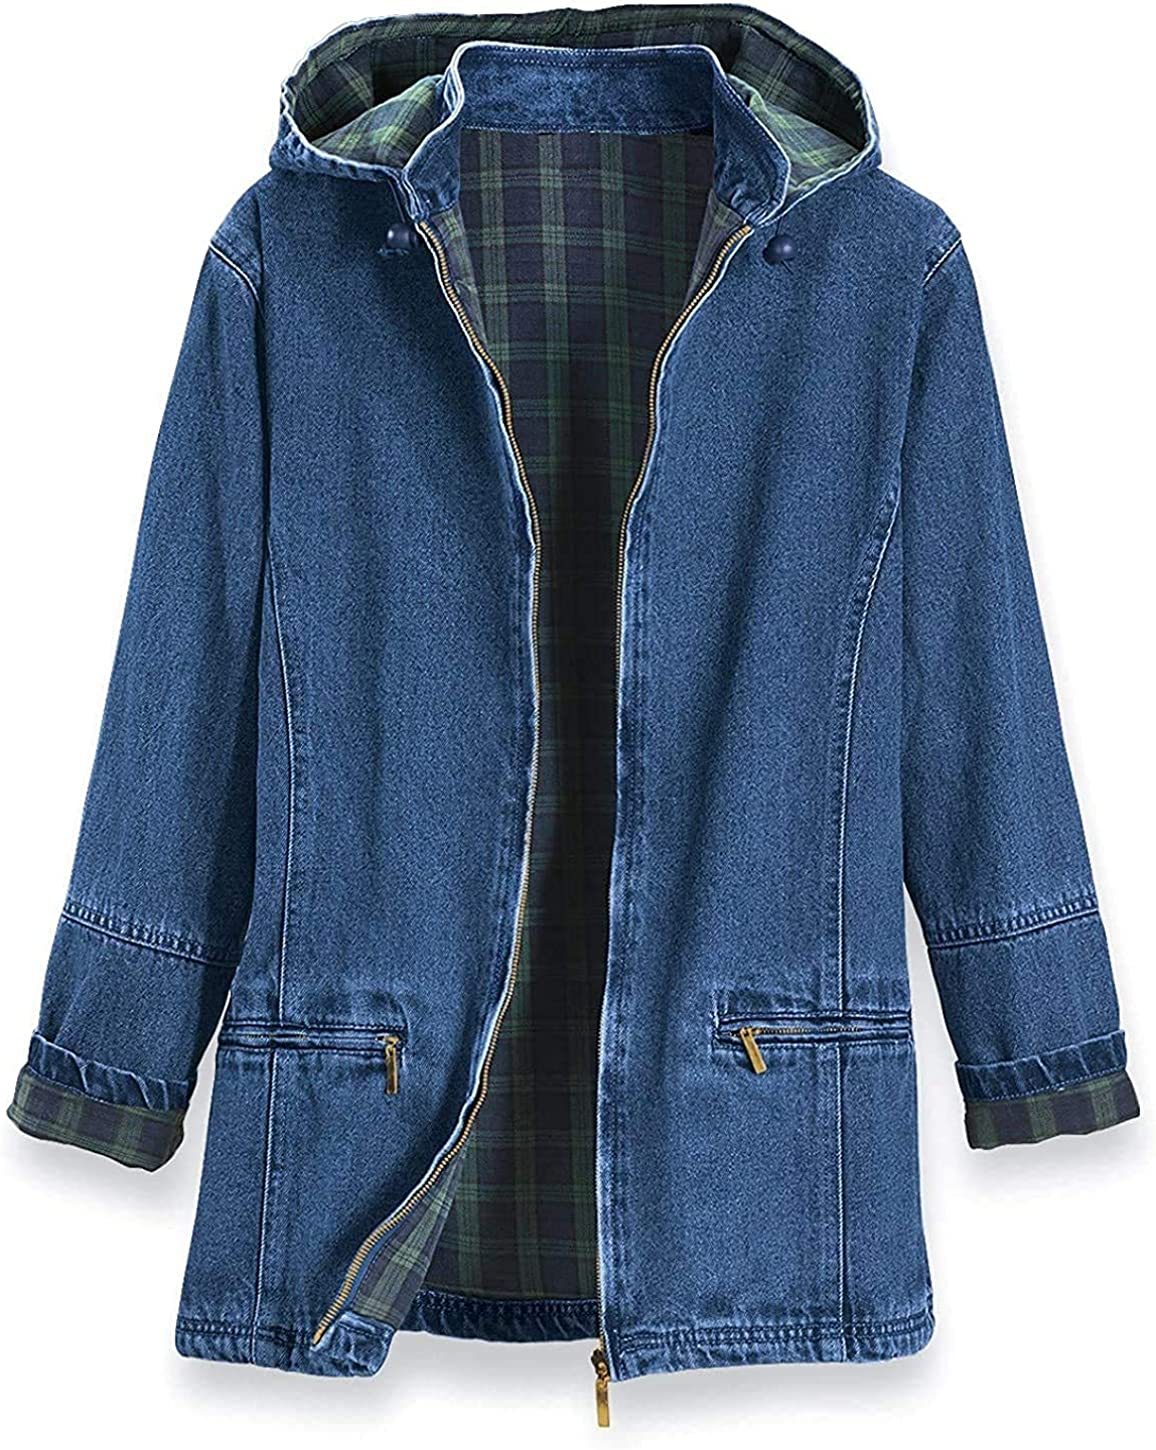 PGI Traders security Women's Flannel Jacket Denim Detachable Easy-to-use Lined